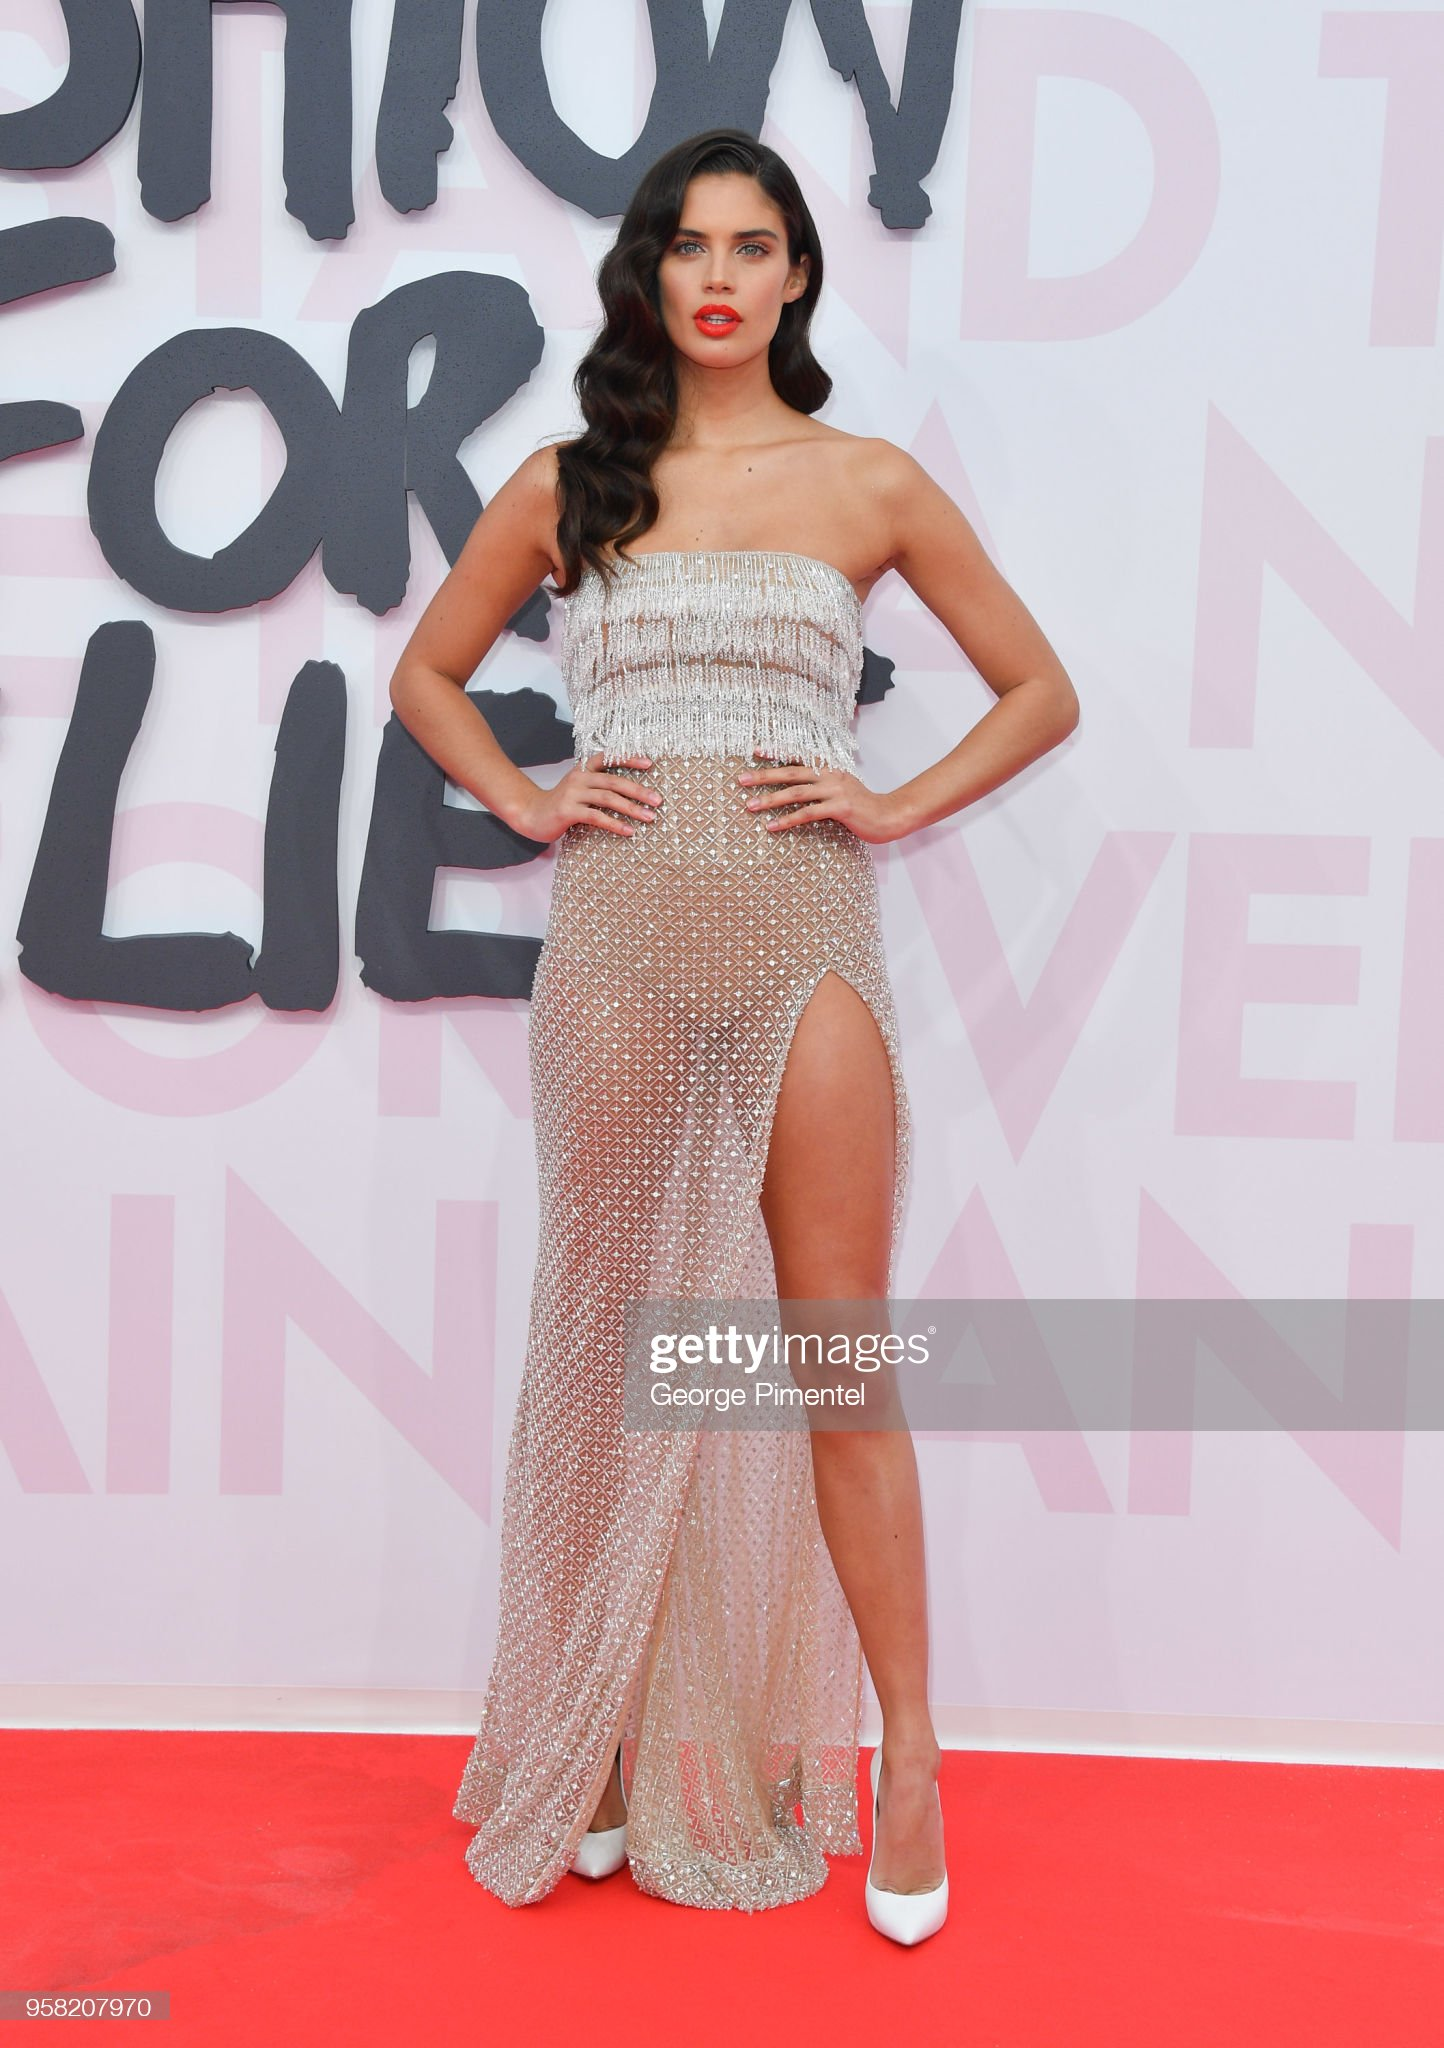 Sara Sampaio (galería de fotos) - pictures Sara-sampaio-attends-fashion-for-relief-cannes-2018-during-the-71st-picture-id958207970?s=2048x2048